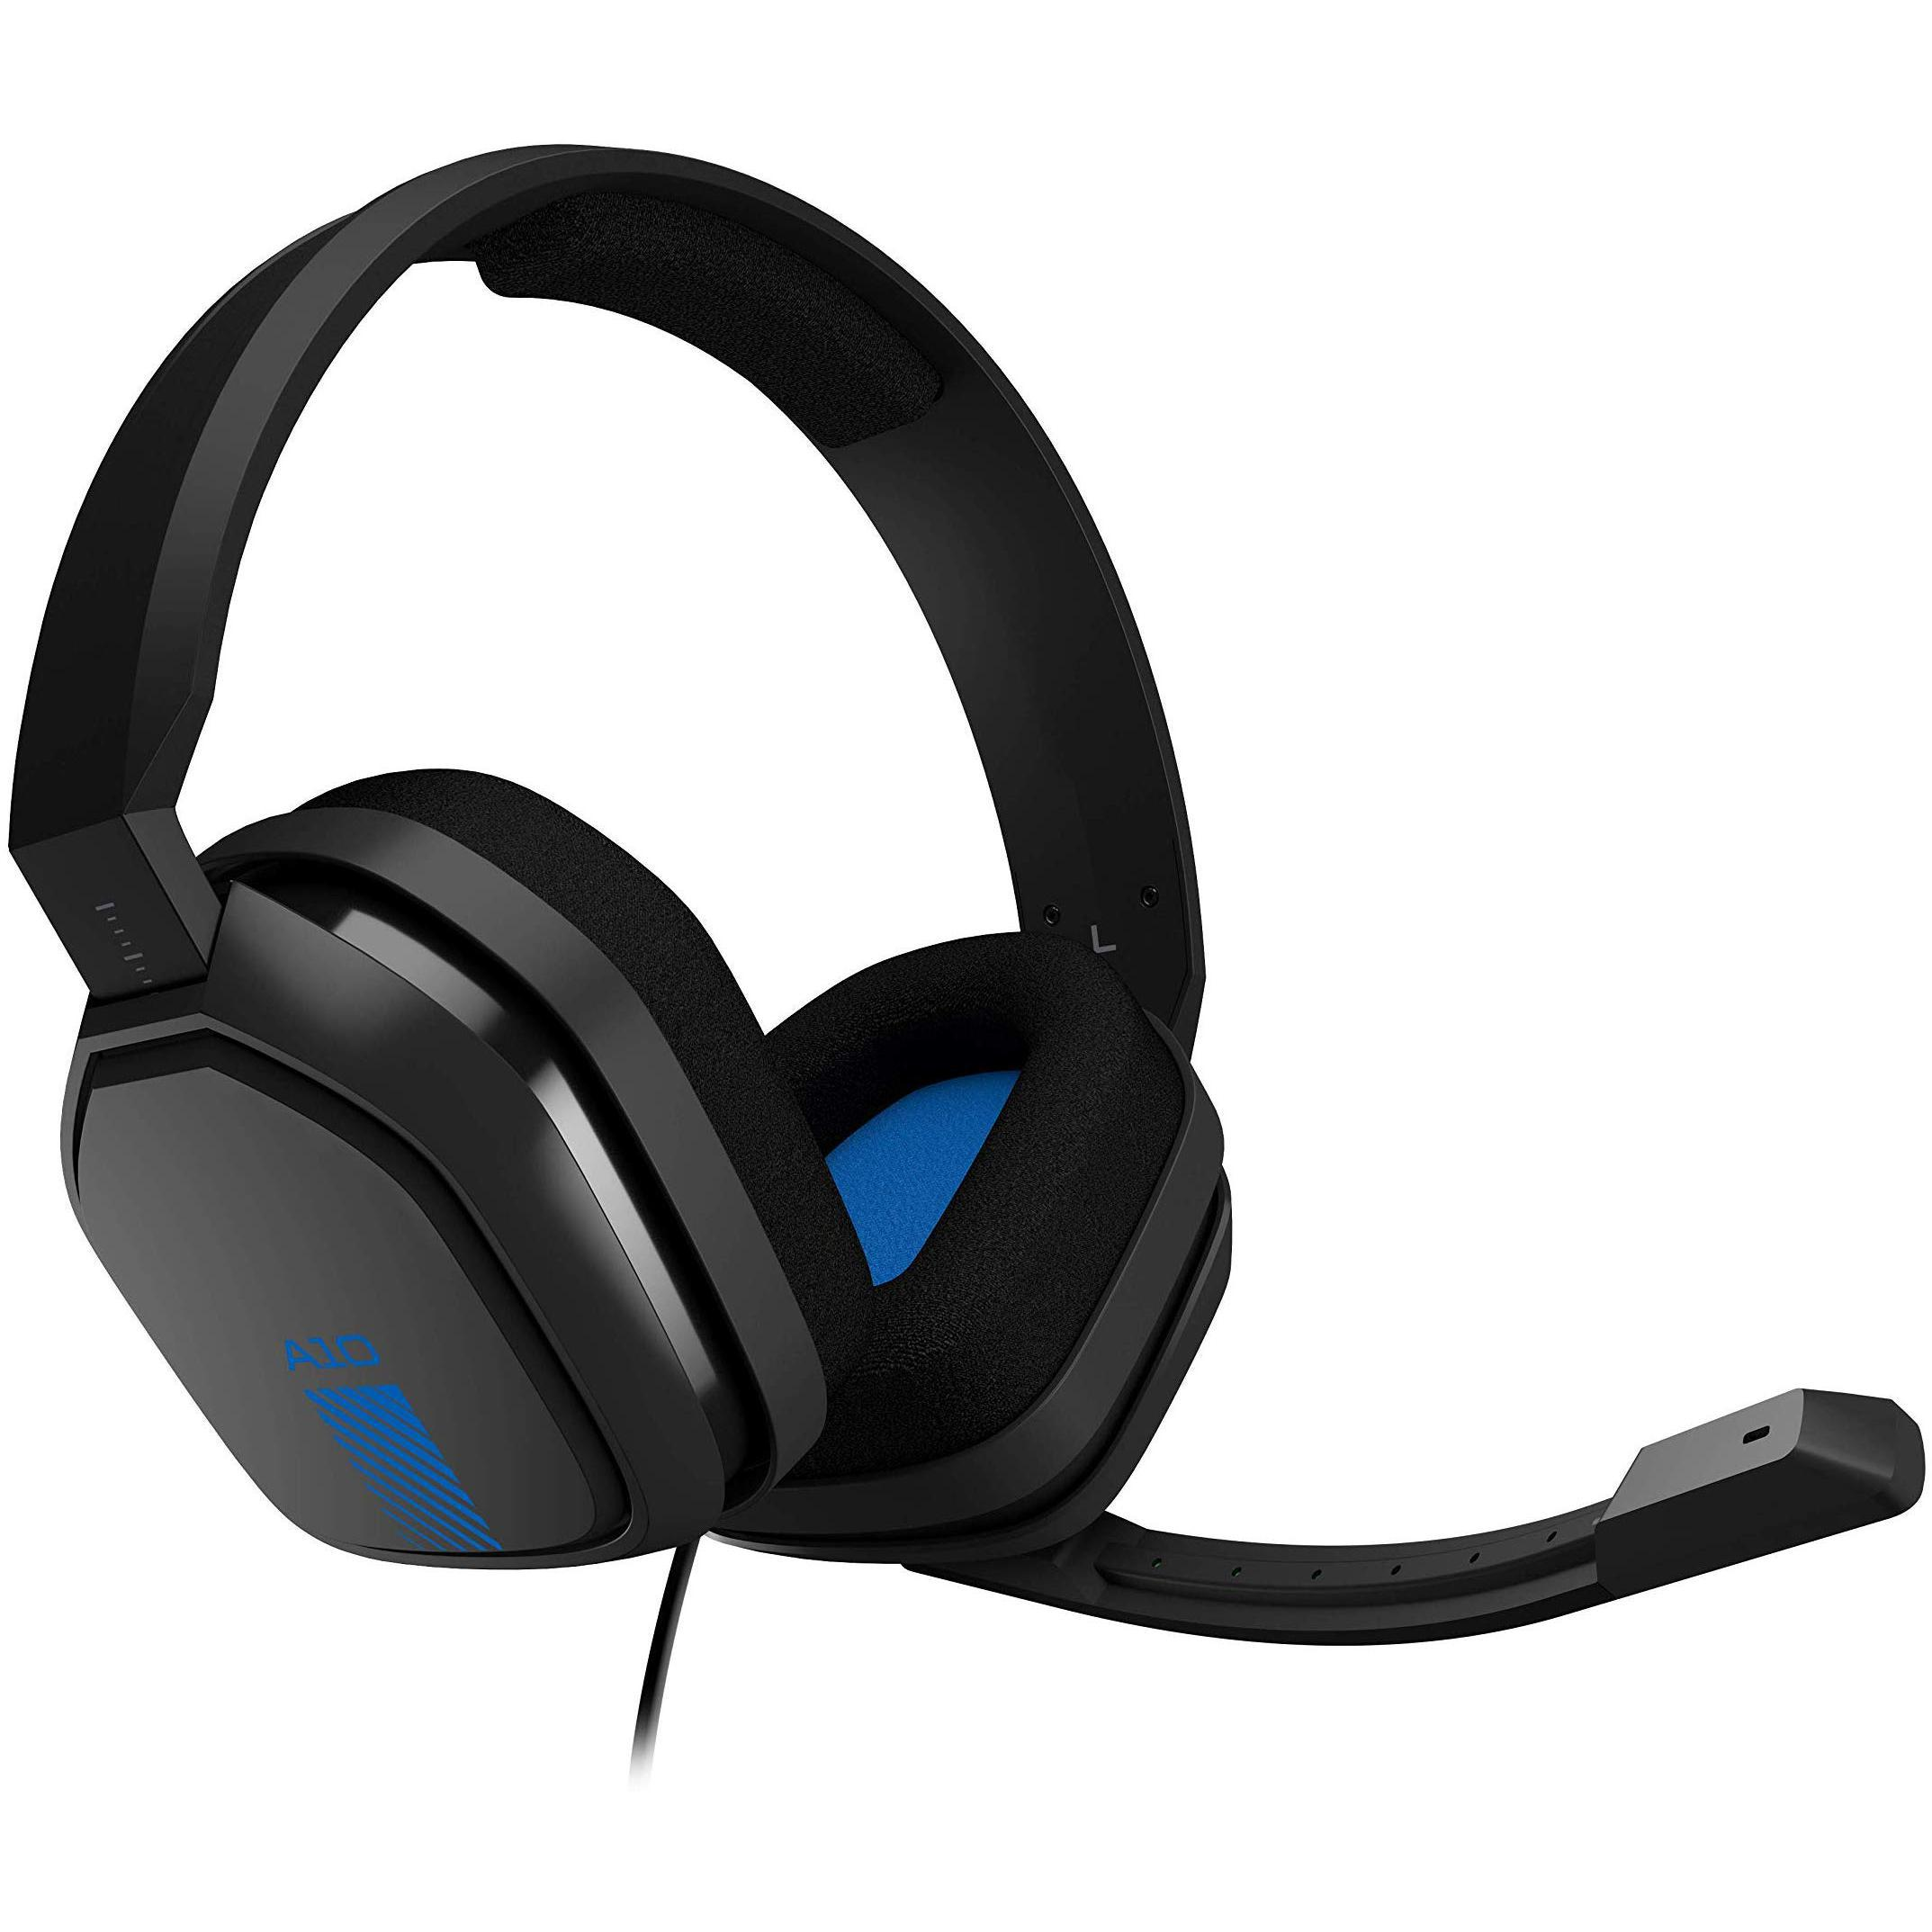 Logitech Astro A10 Noise cancelling Gaming Headphone with microphone - Gray/Blue